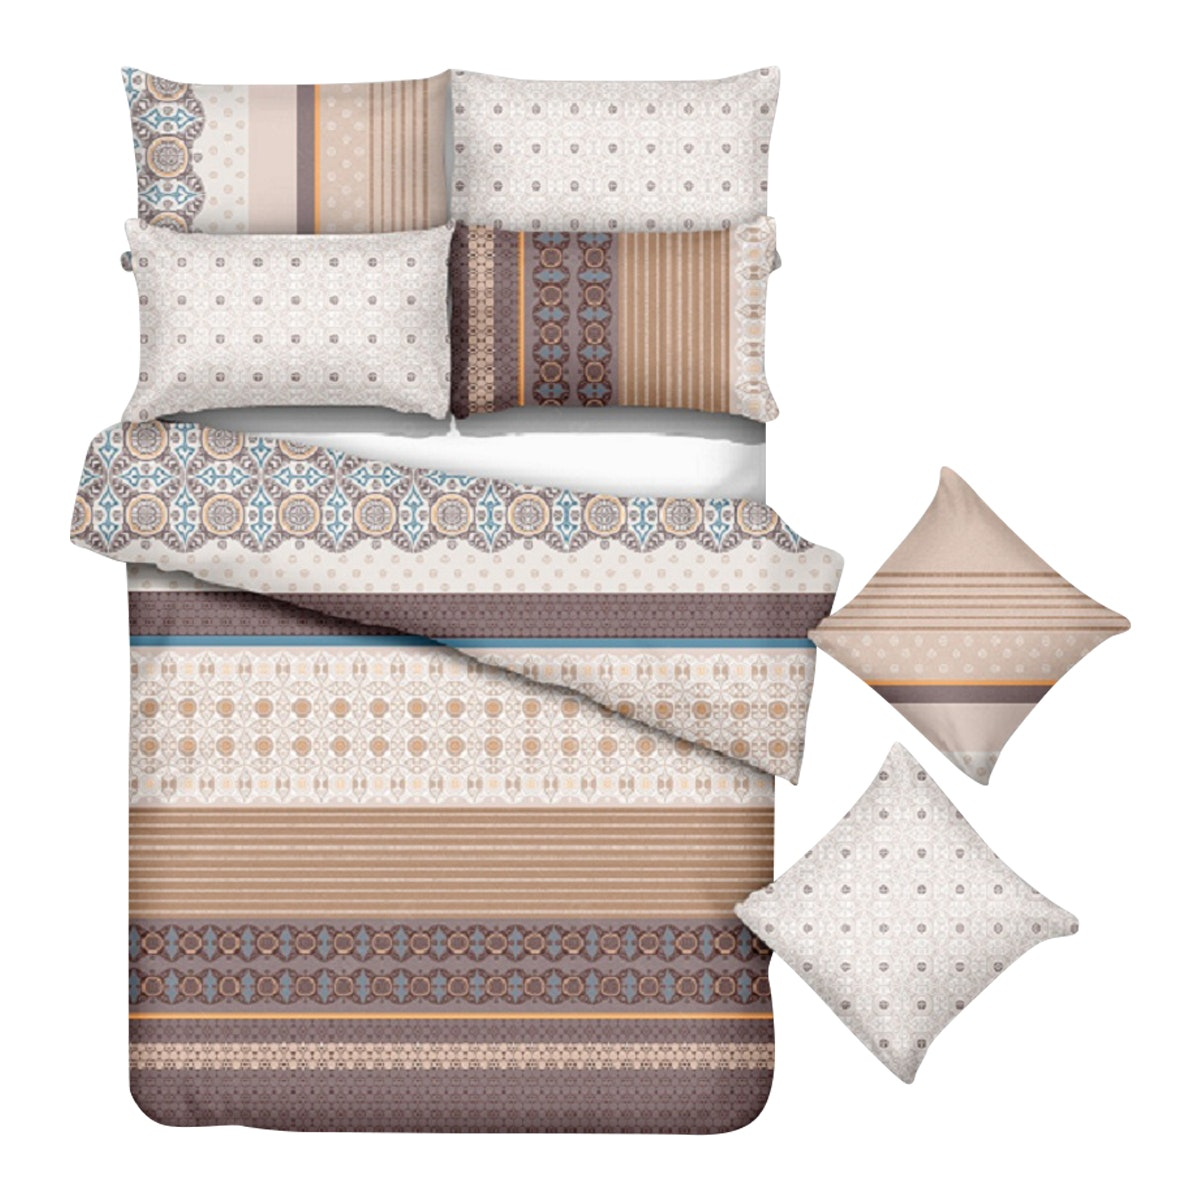 Kanaya Bed sheets set Aboyami 160x200x30cm